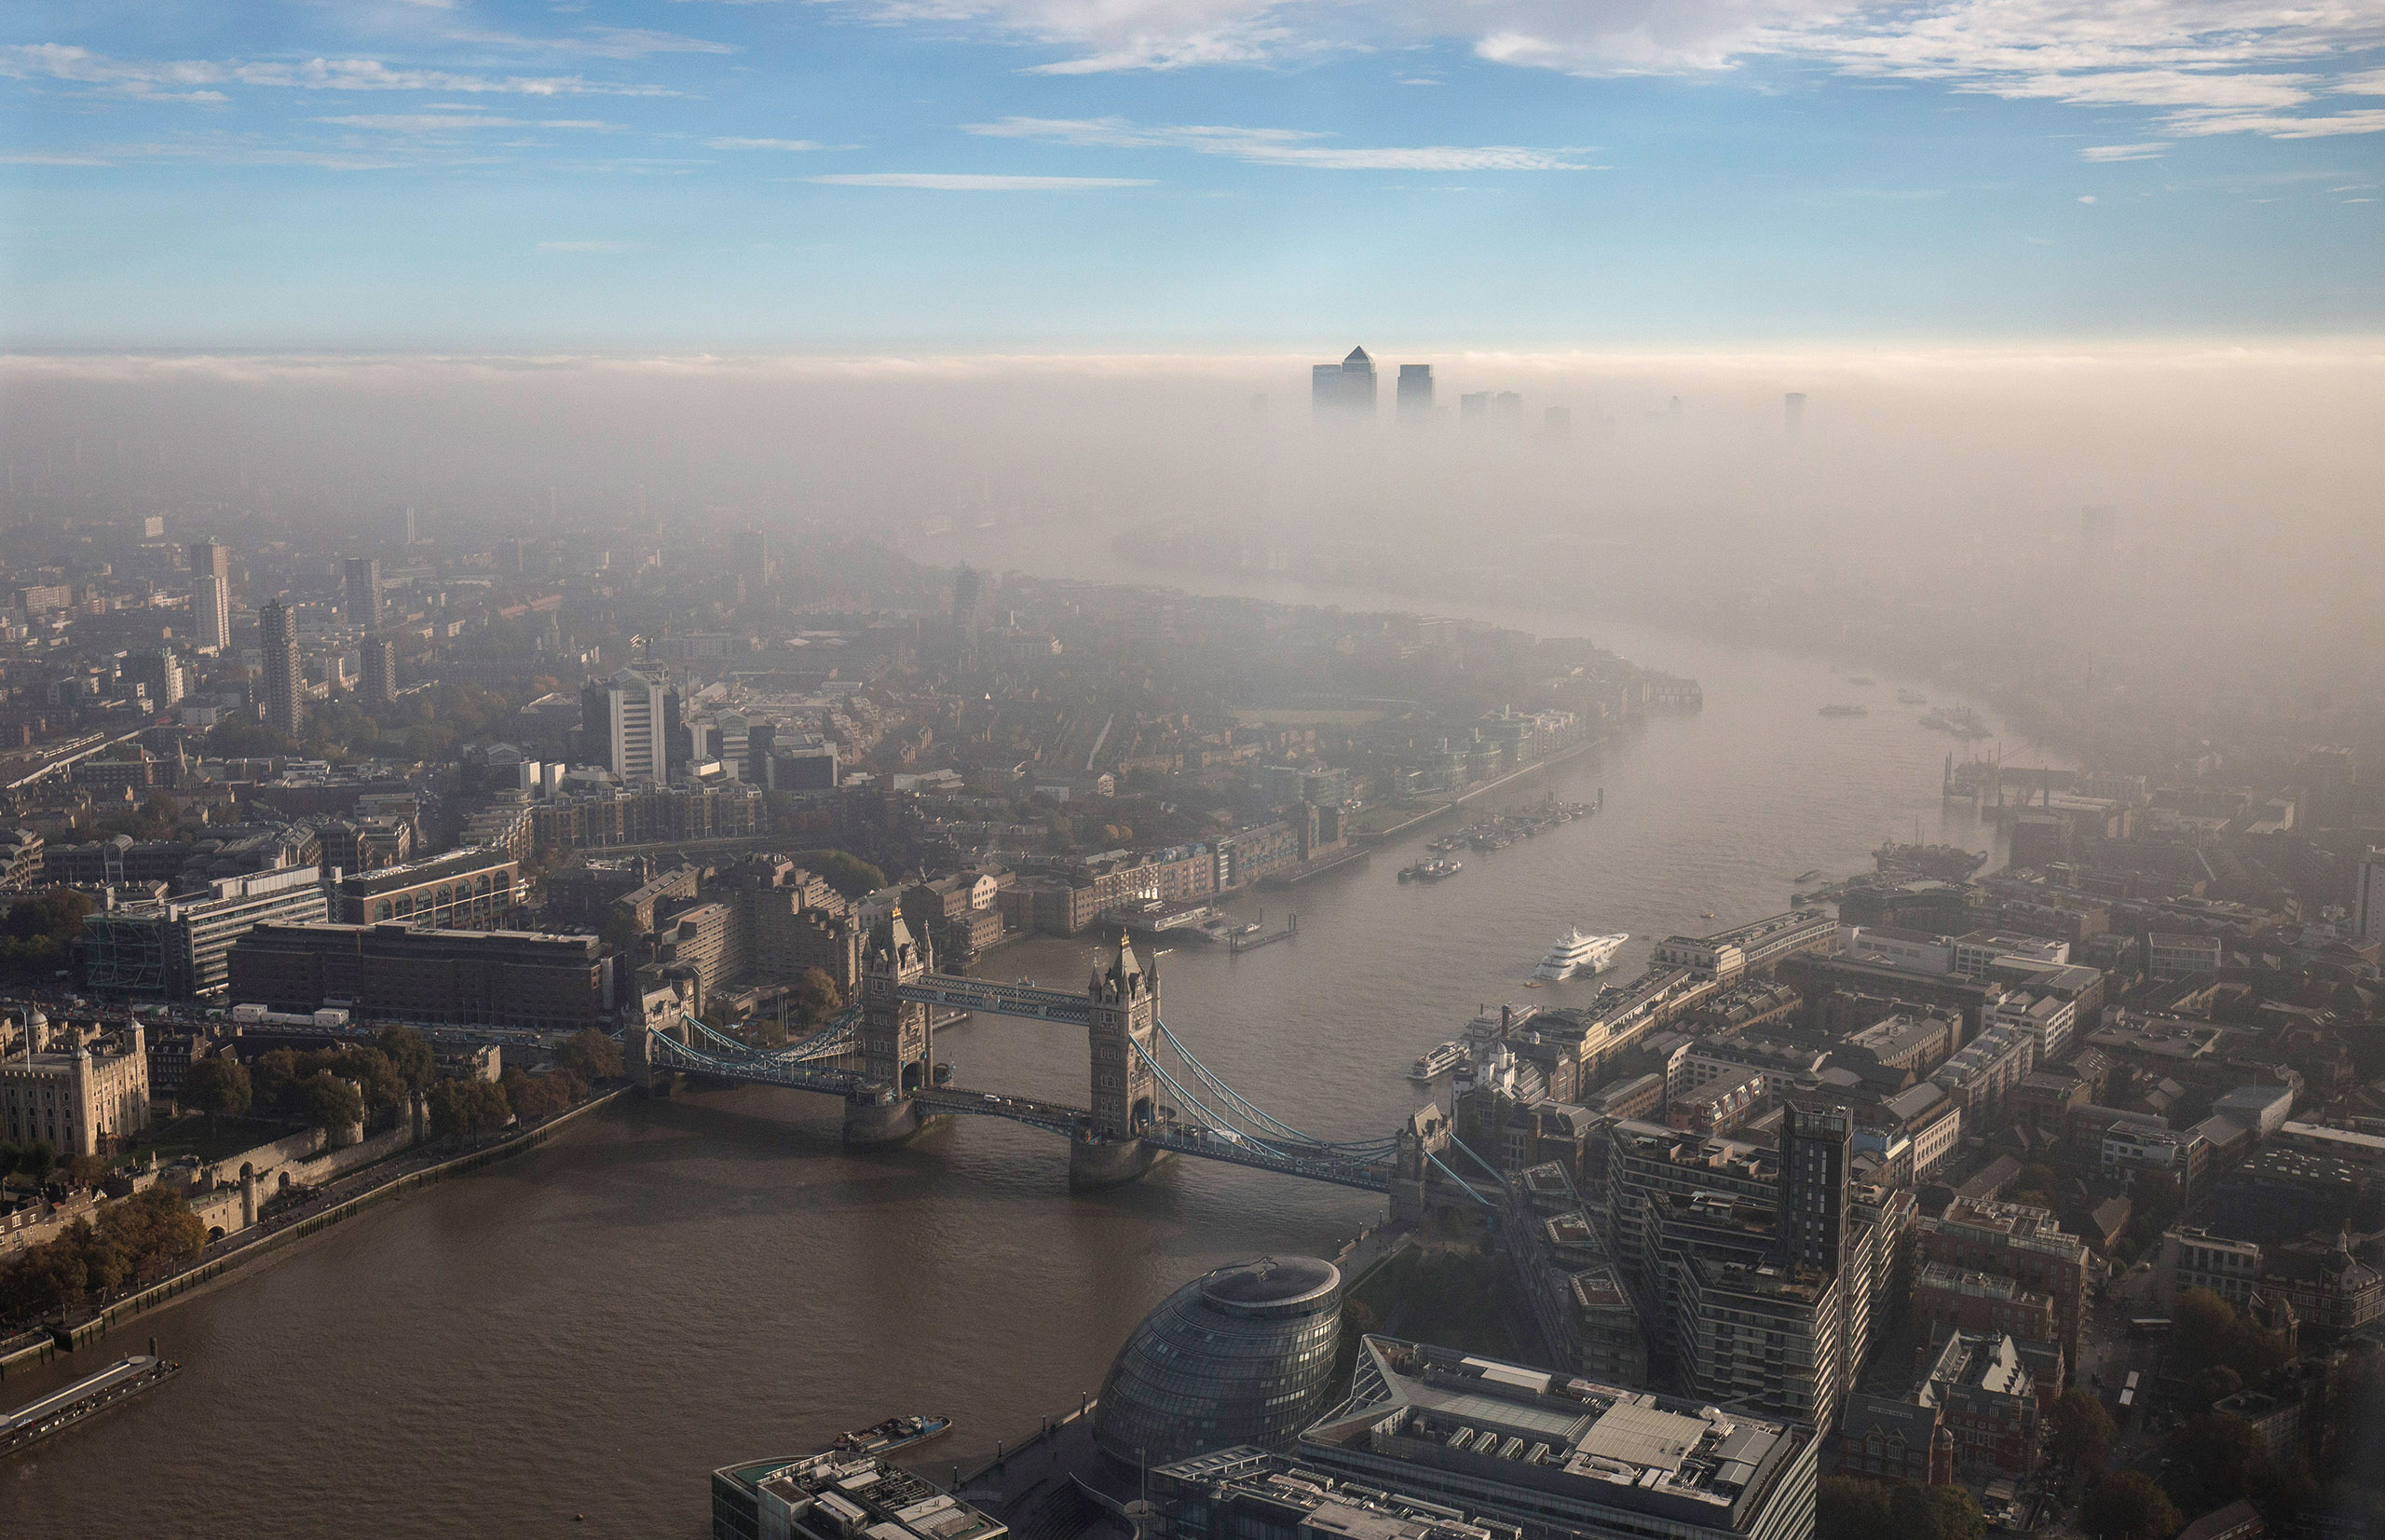 A general view of Tower Bridge and the city through the fog, seen from The View From The Shard in London, on Oct. 31, 2016.